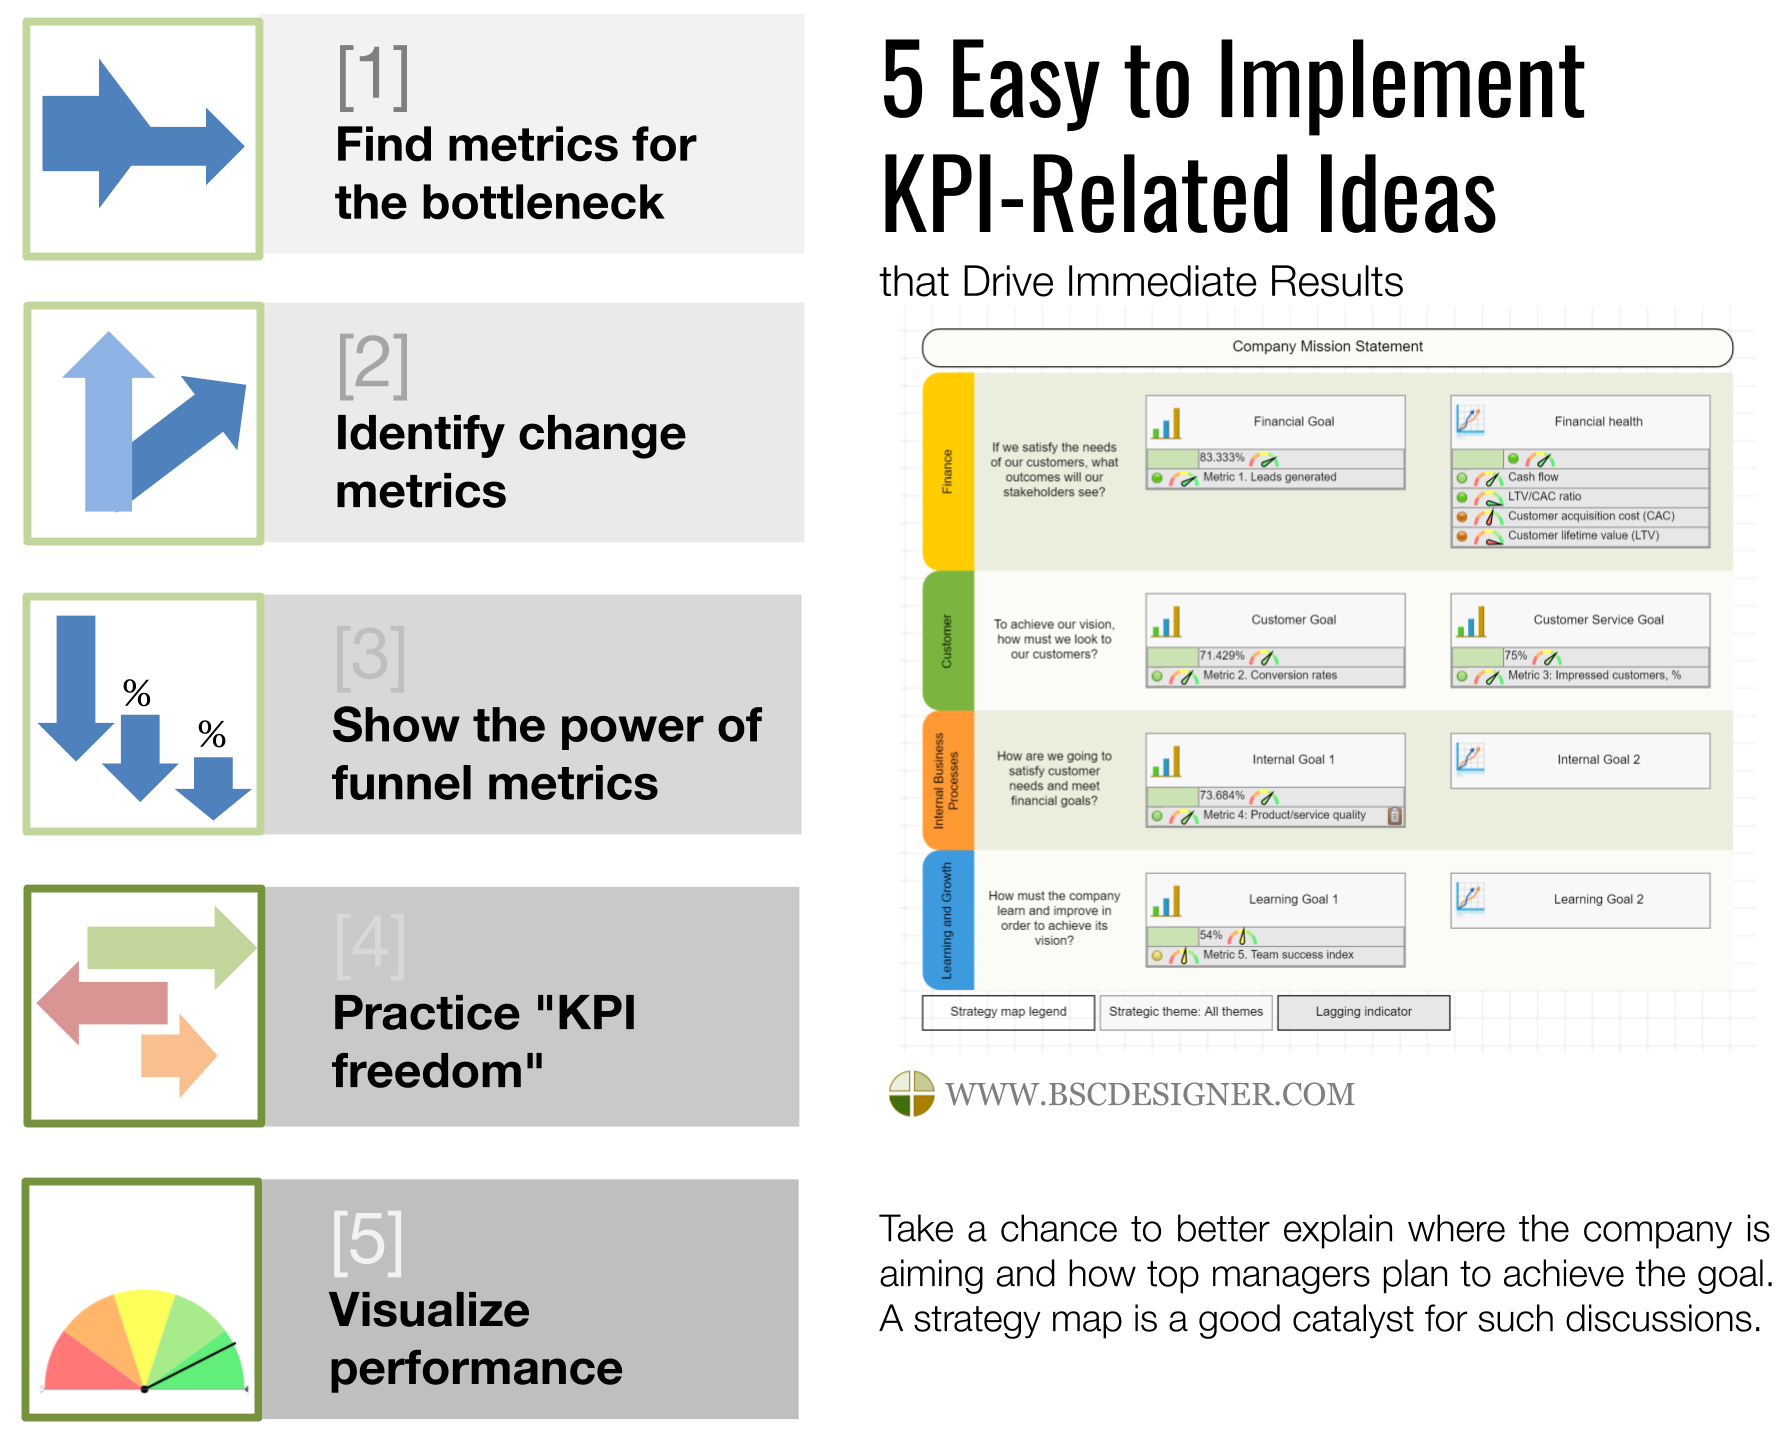 5 easy to implement KPI-related ideas that drive immediate improvements